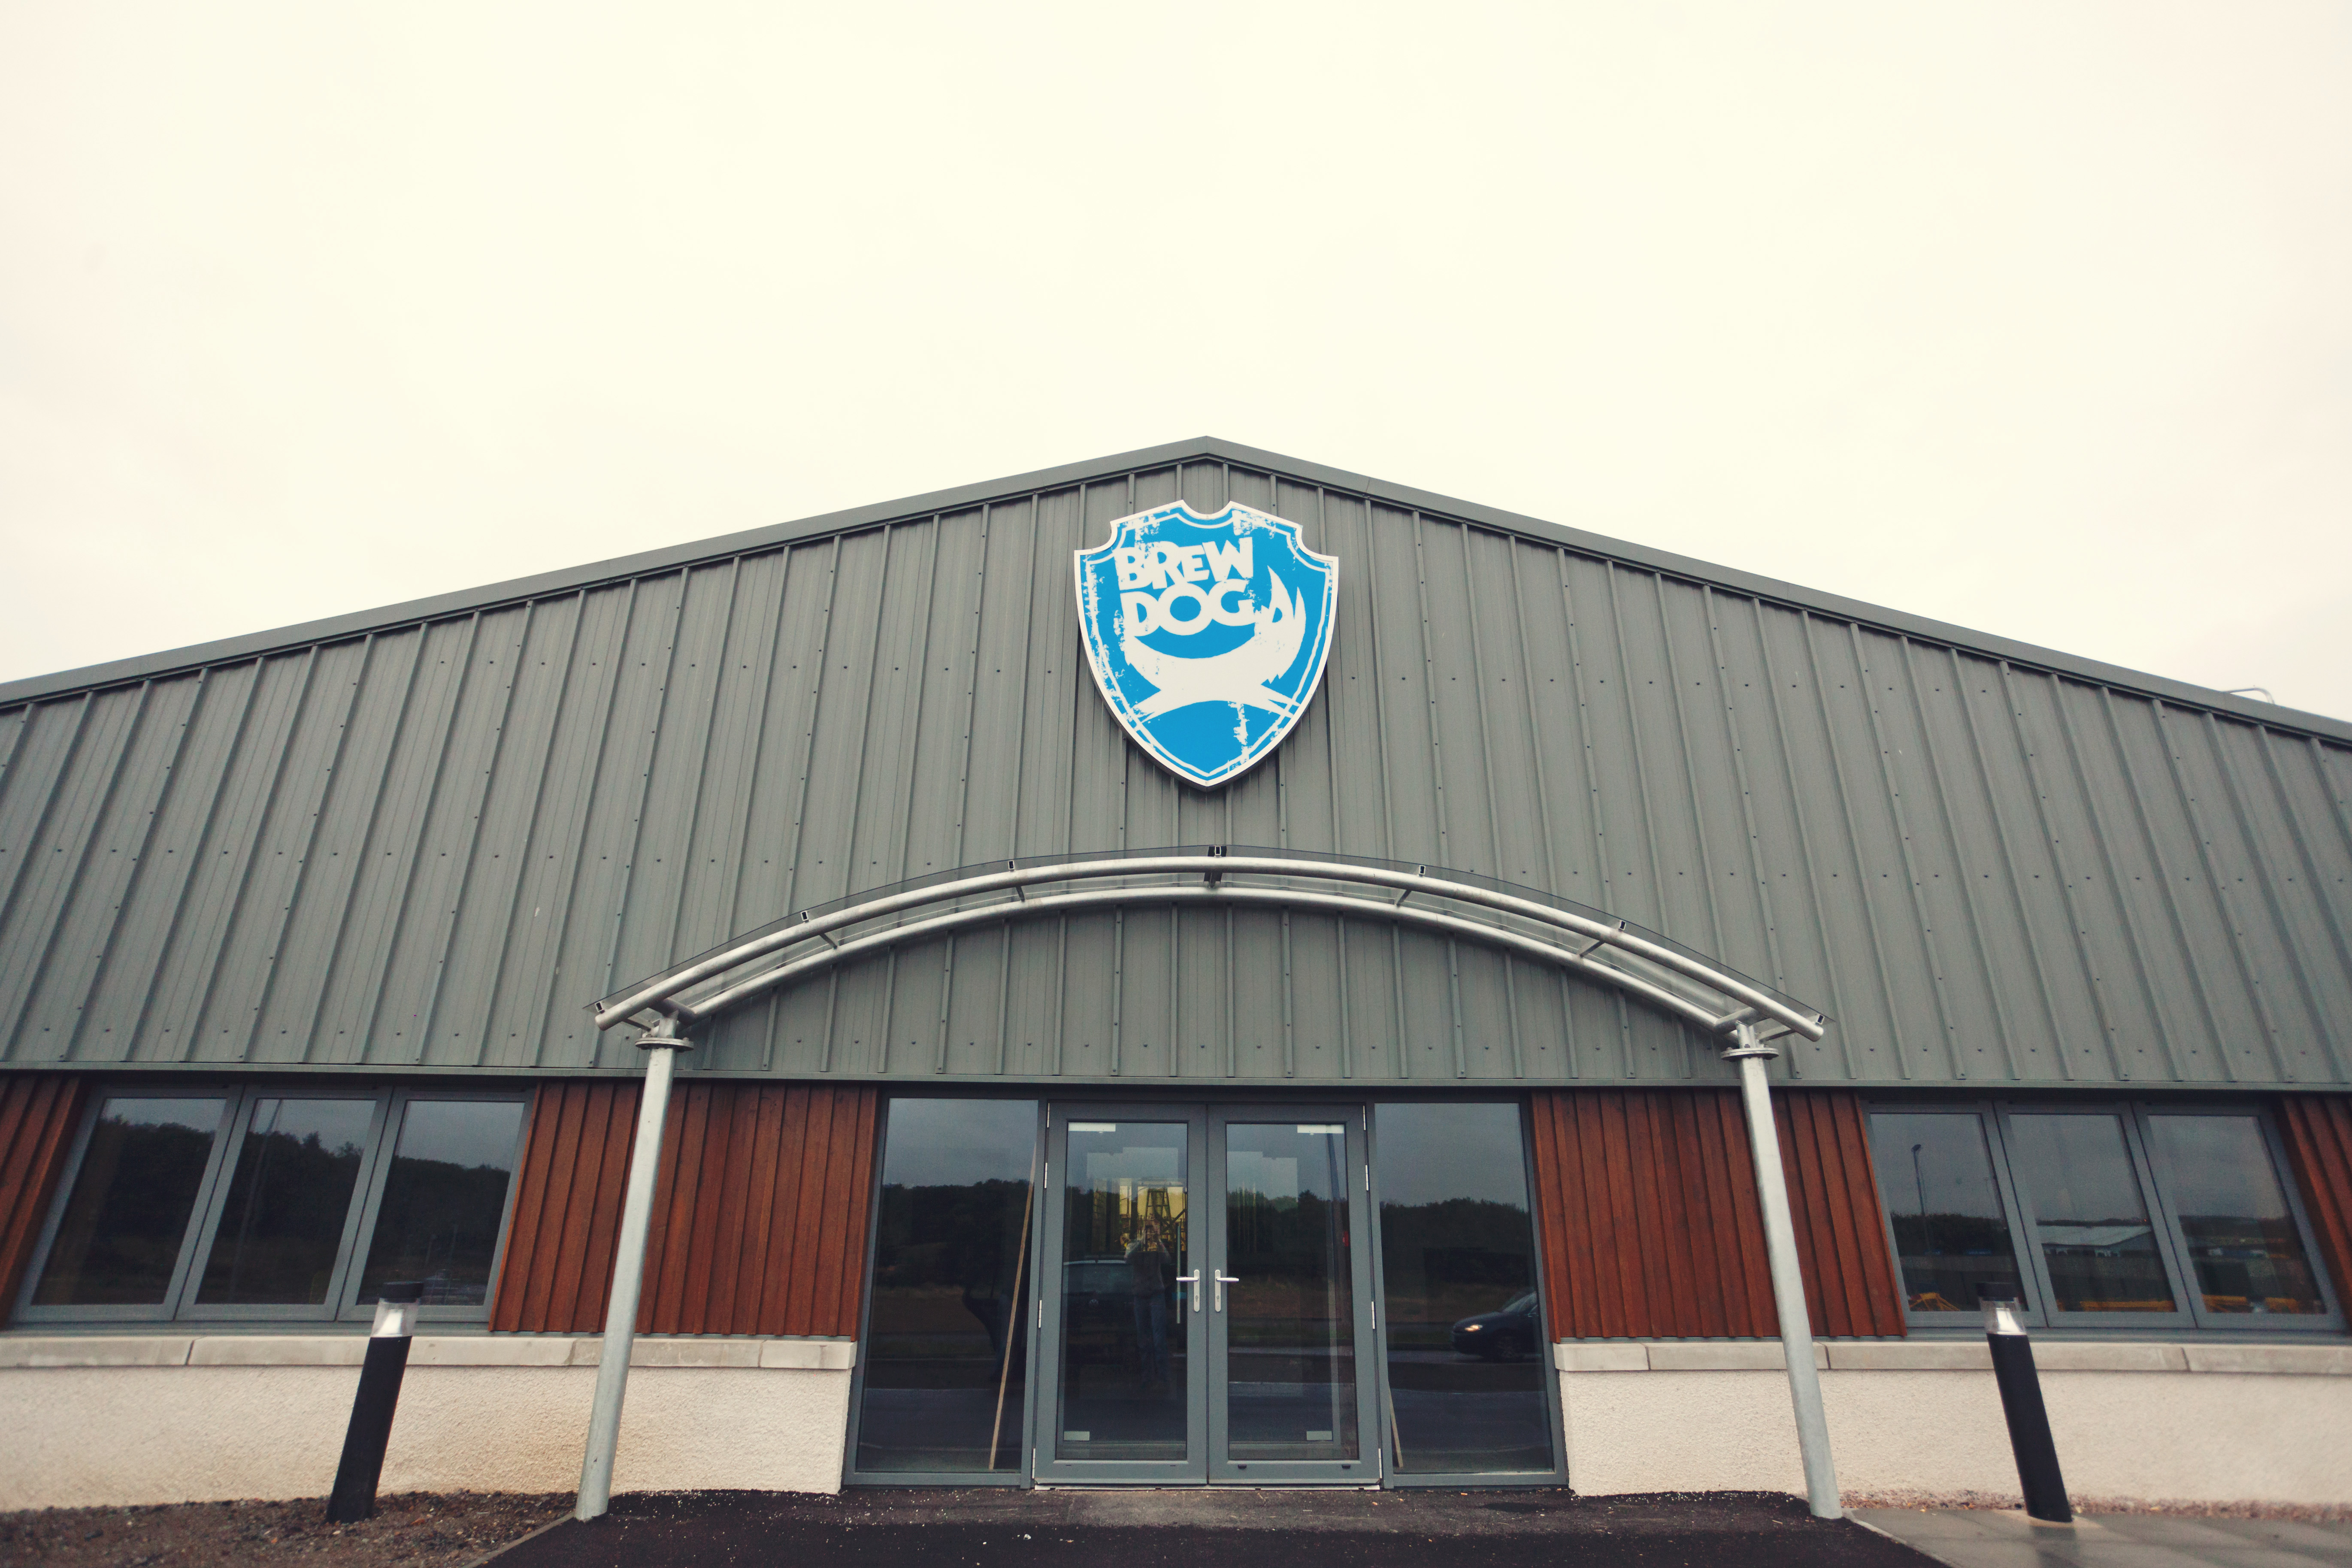 The new brewery is in Ellon, Aberdeenshire